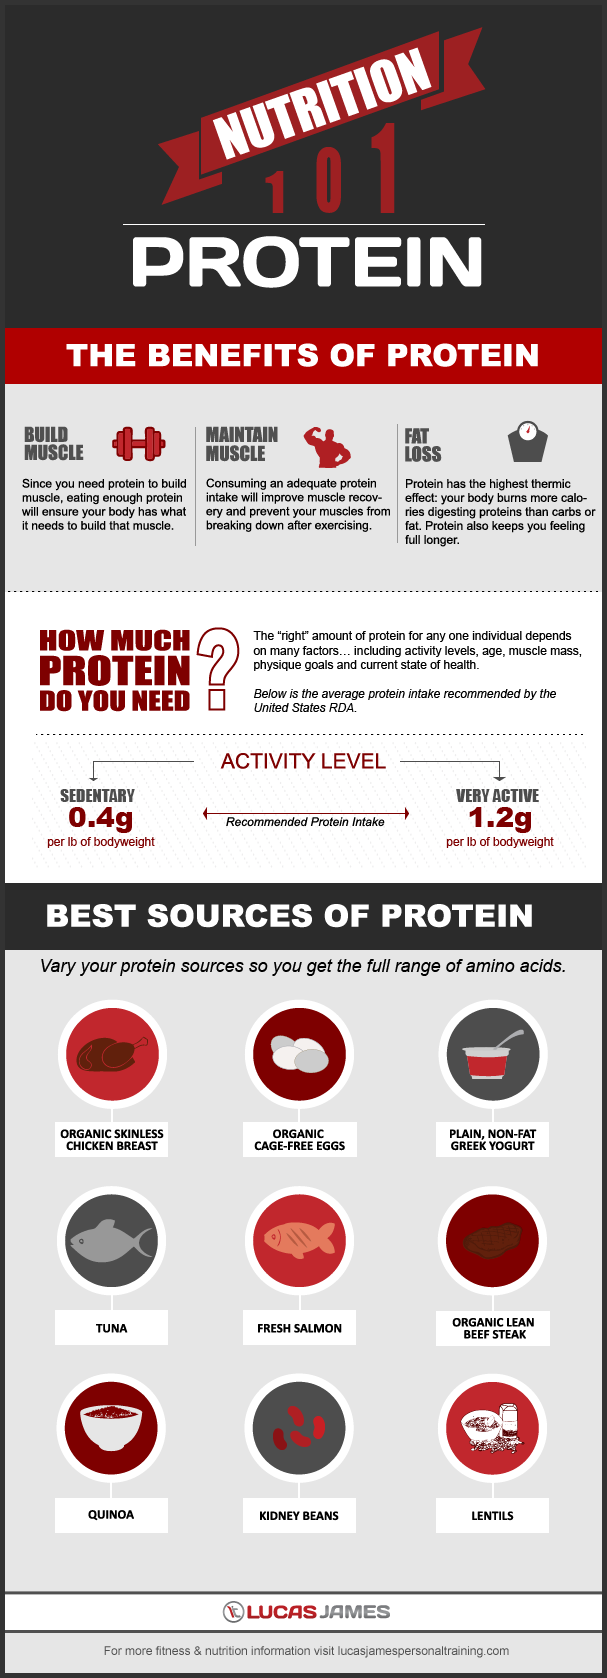 Nutrition 101: The Benefits of Protein